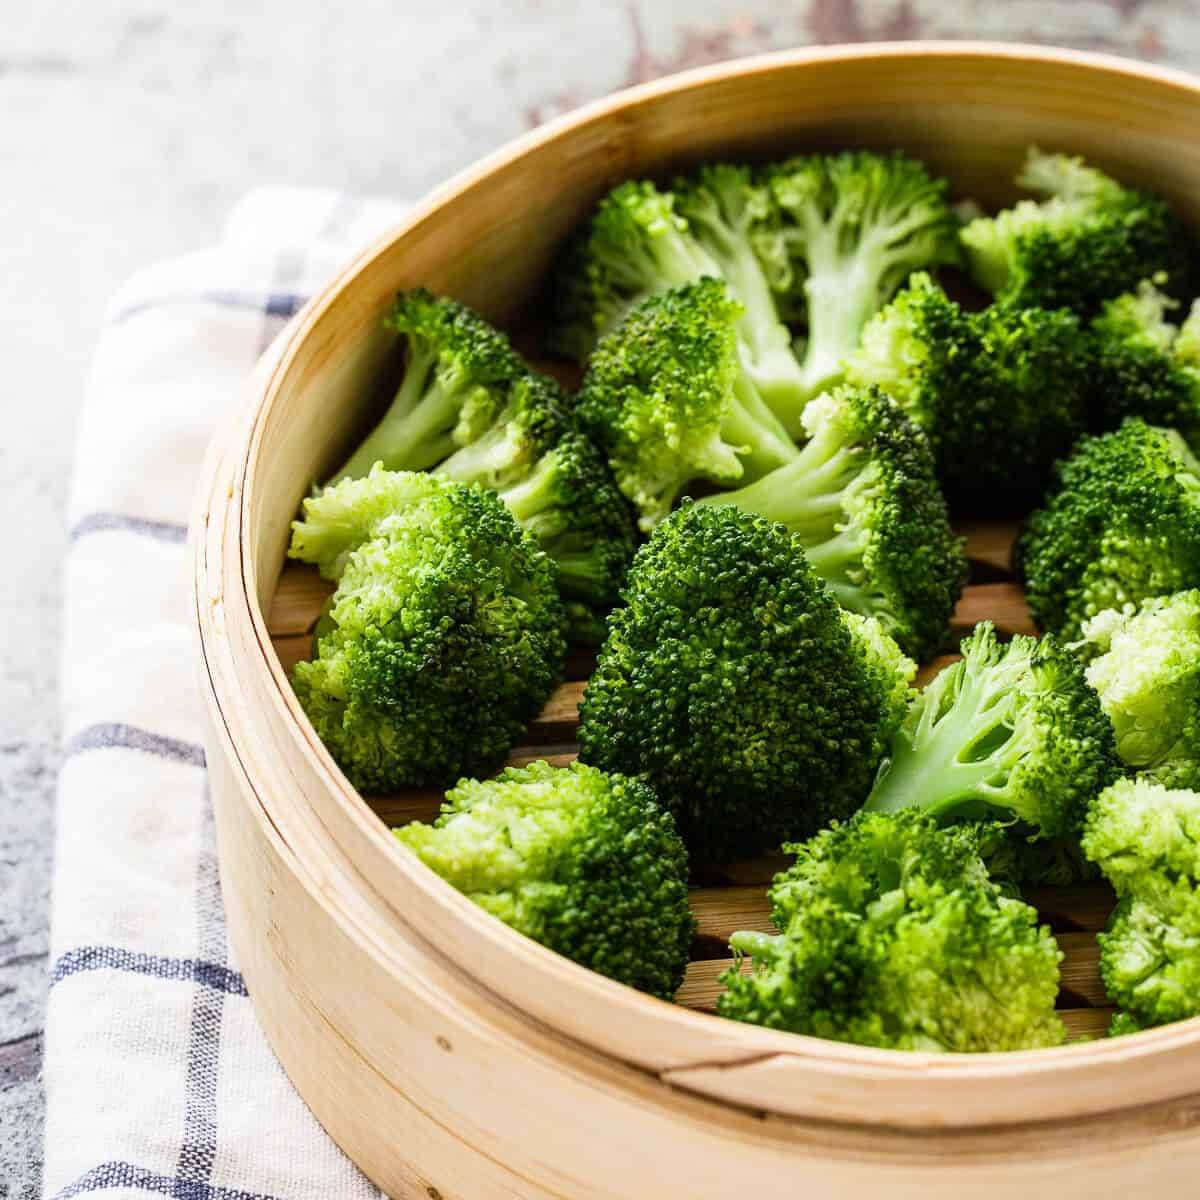 cooked broccoli in a steamer basket